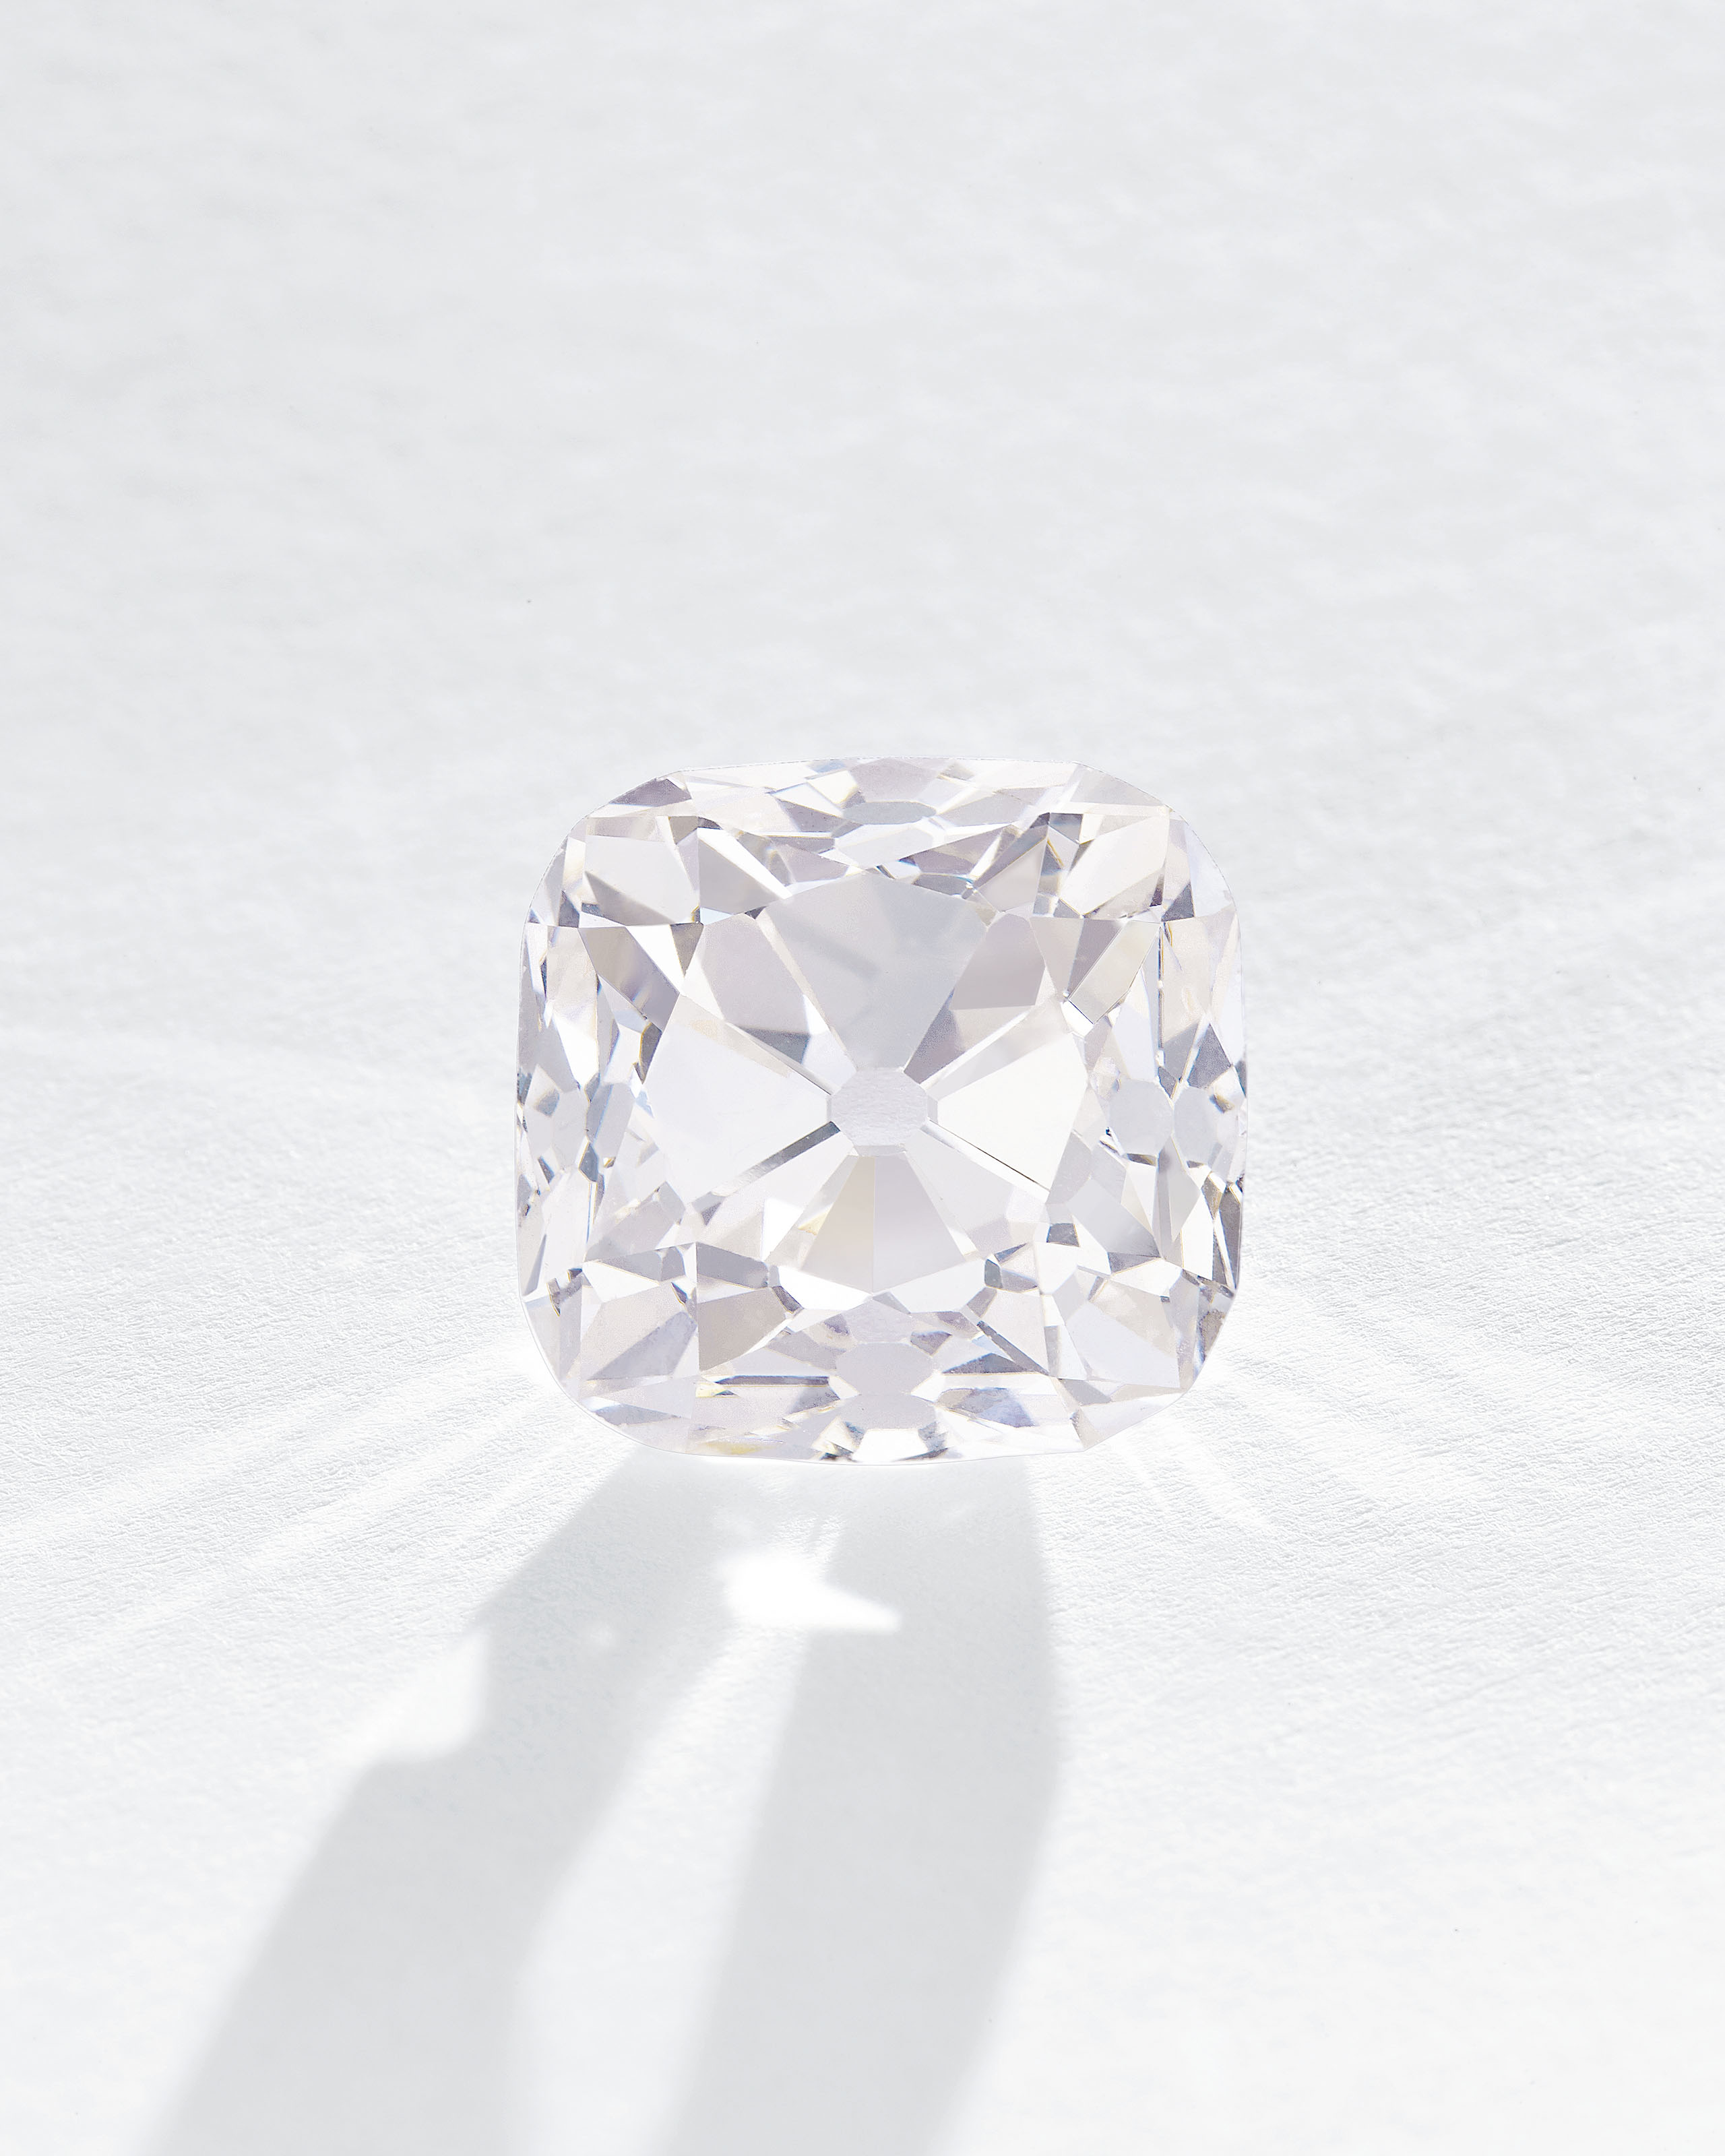 LE GRAND MAZARIN AN HISTORIC COLOURED DIAMOND